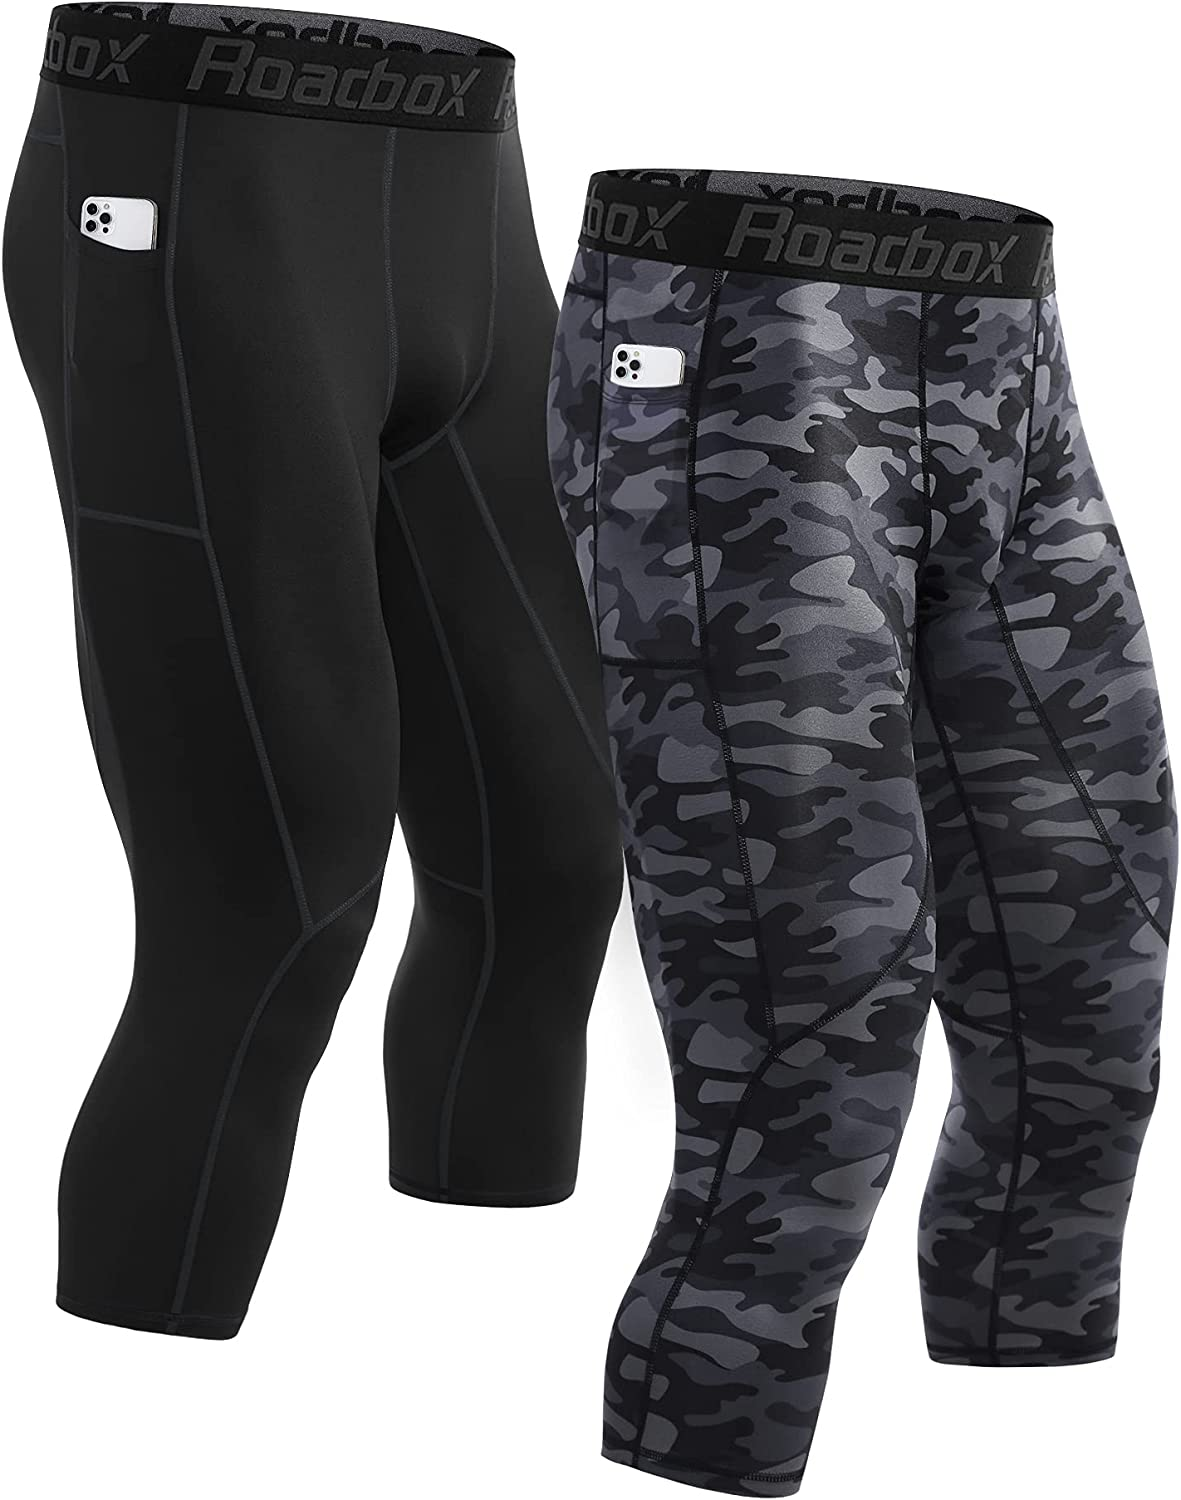 Roadbox Popular brand Mens 3 4 Compression Pants Running famous Lay with Base Pockets